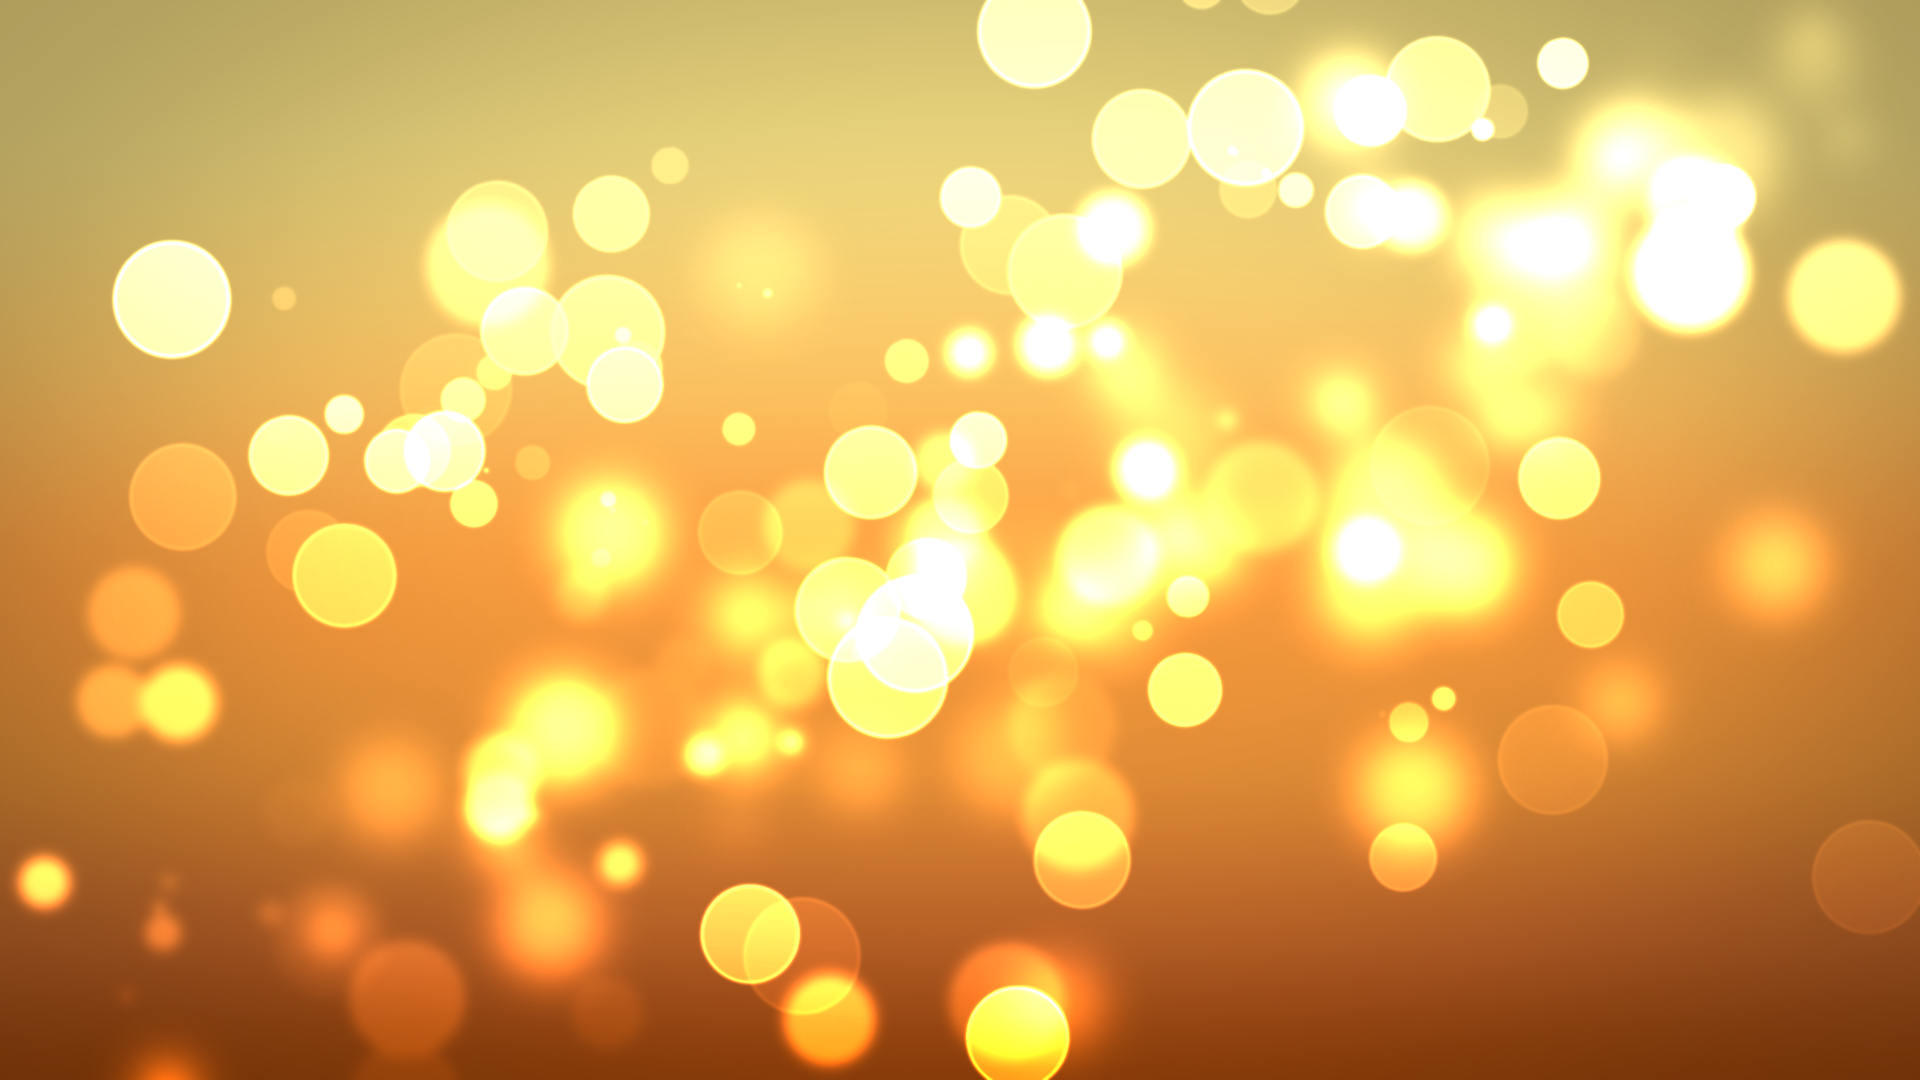 Wallpaper Gold Collection (37+) Background hd wallpaper